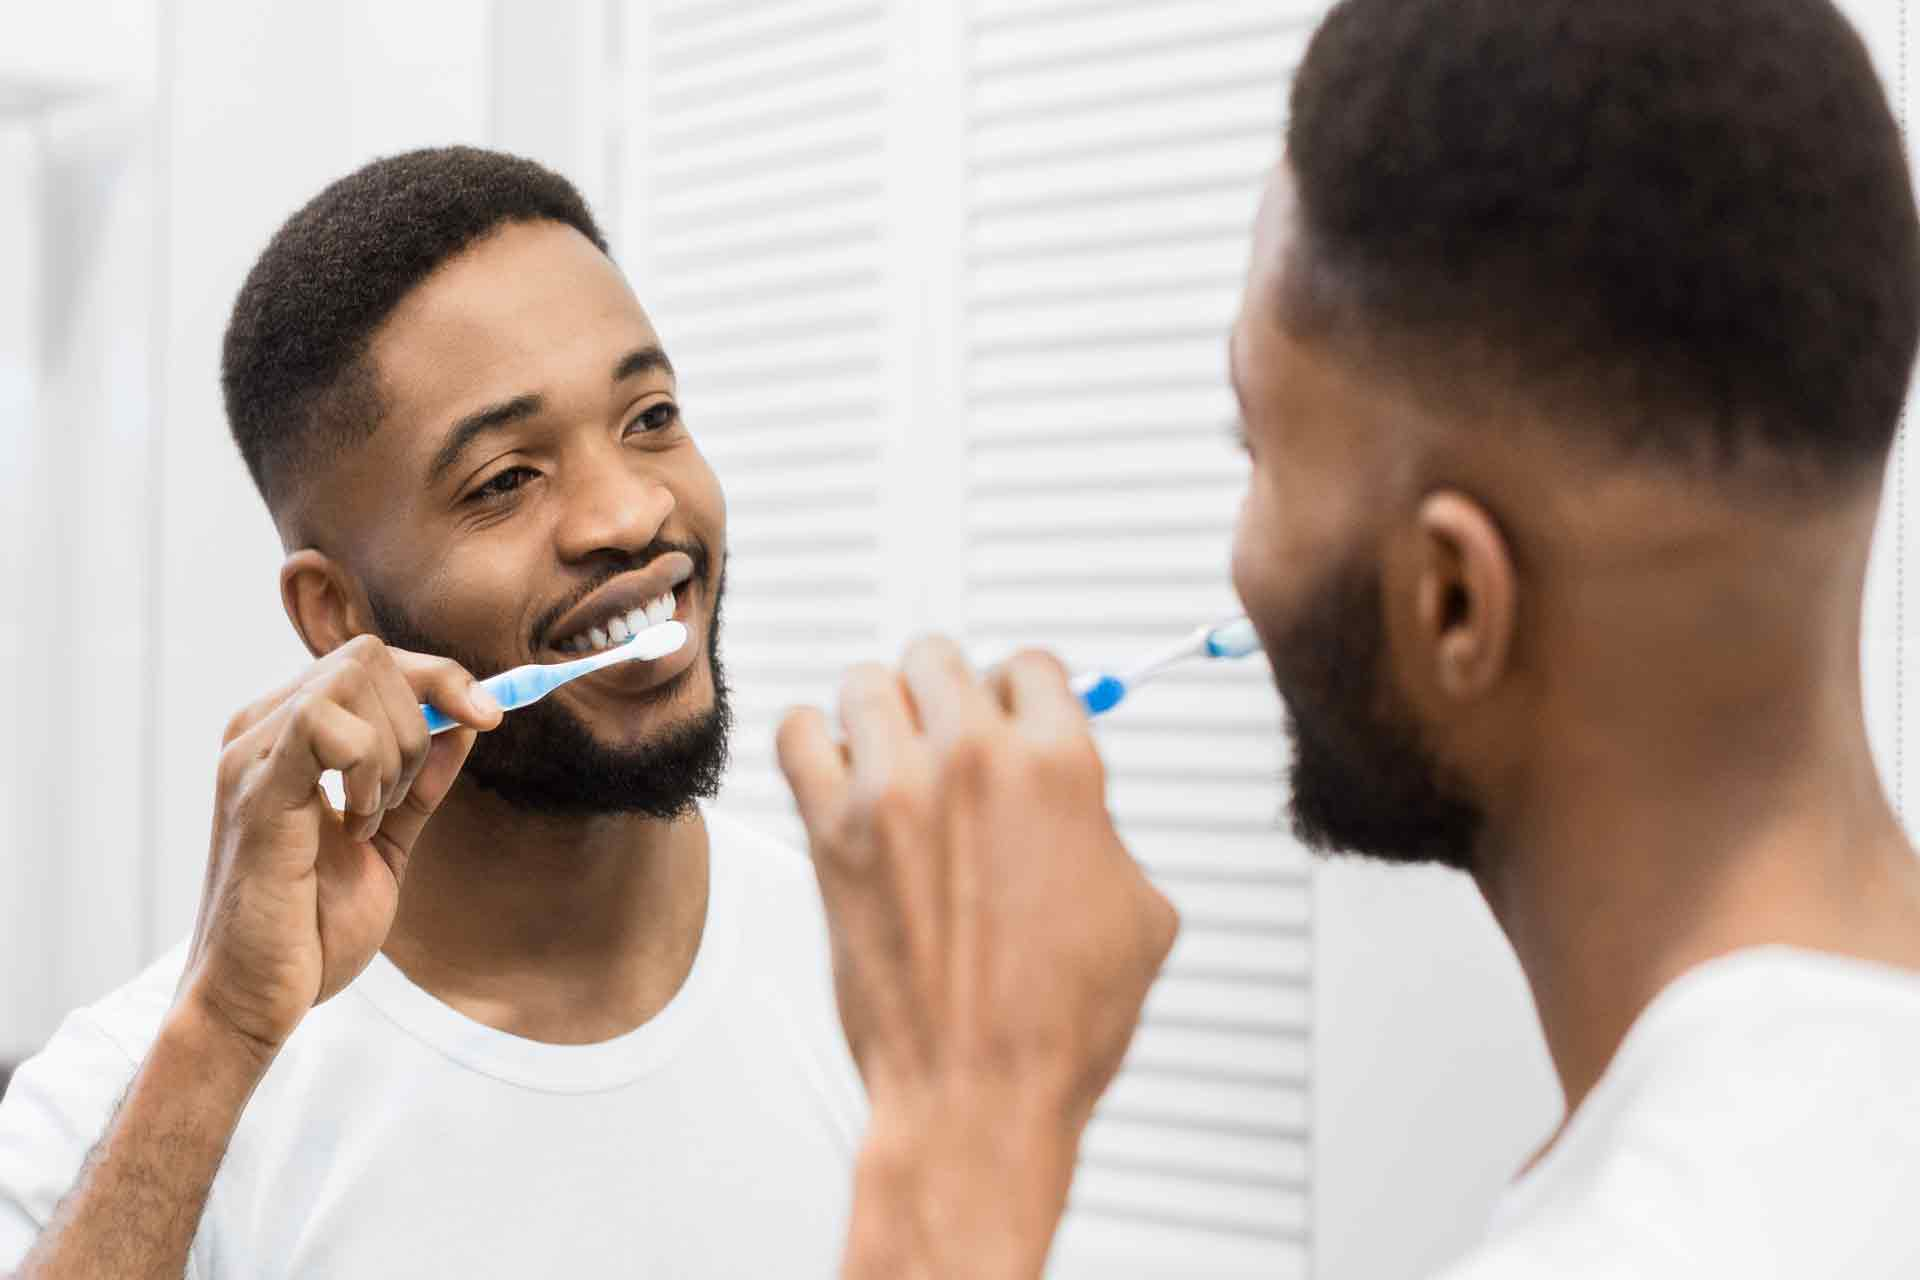 5 Important Benefits of Teeth Cleaning